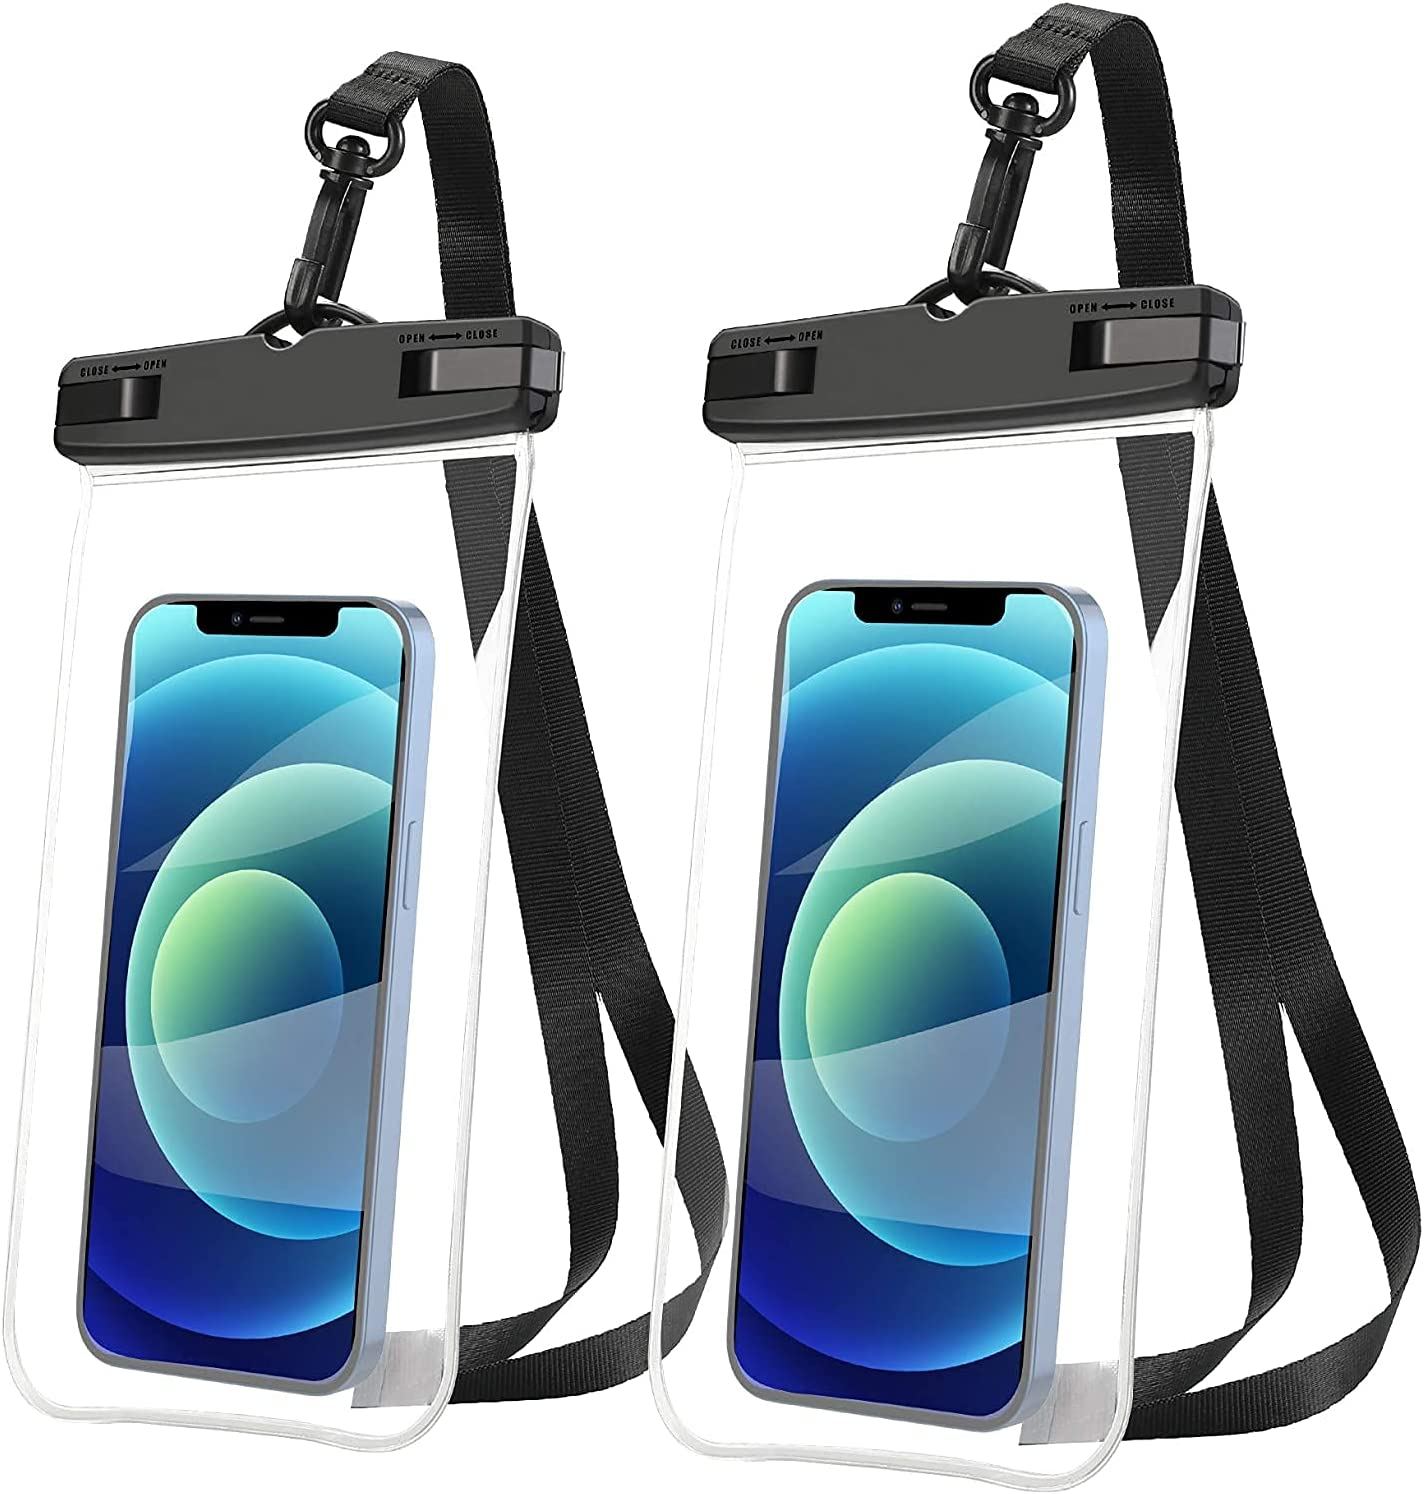 LENPOW Universal Waterproof Case, 2-Pack Clear IPX8 Waterproof Phone Pouch Lanyard Dry Bag for iPhone 12 11 Pro XS XR Max X 8 7 Plus Samsung Galaxy S21 S20 S10 Edge Note Google HTC OnePlus up to 6.9